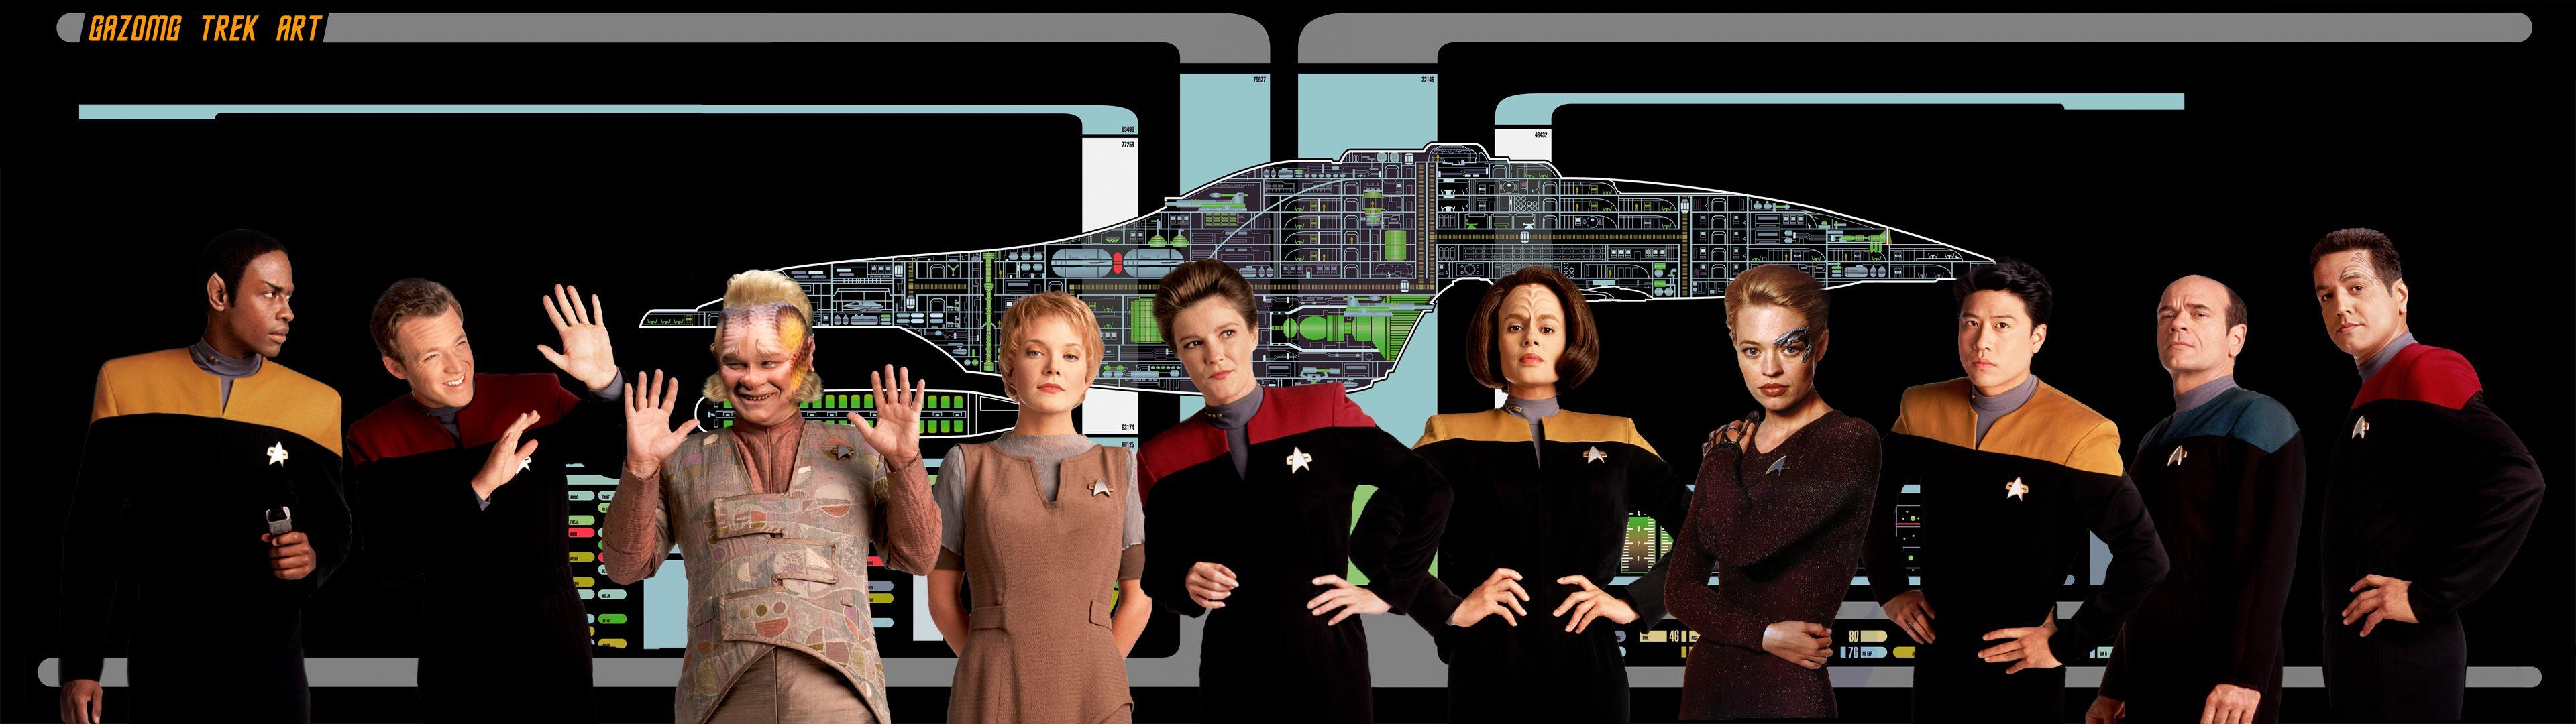 Extra Widescreen Star Trek Voyager Wallpapers by gazomg